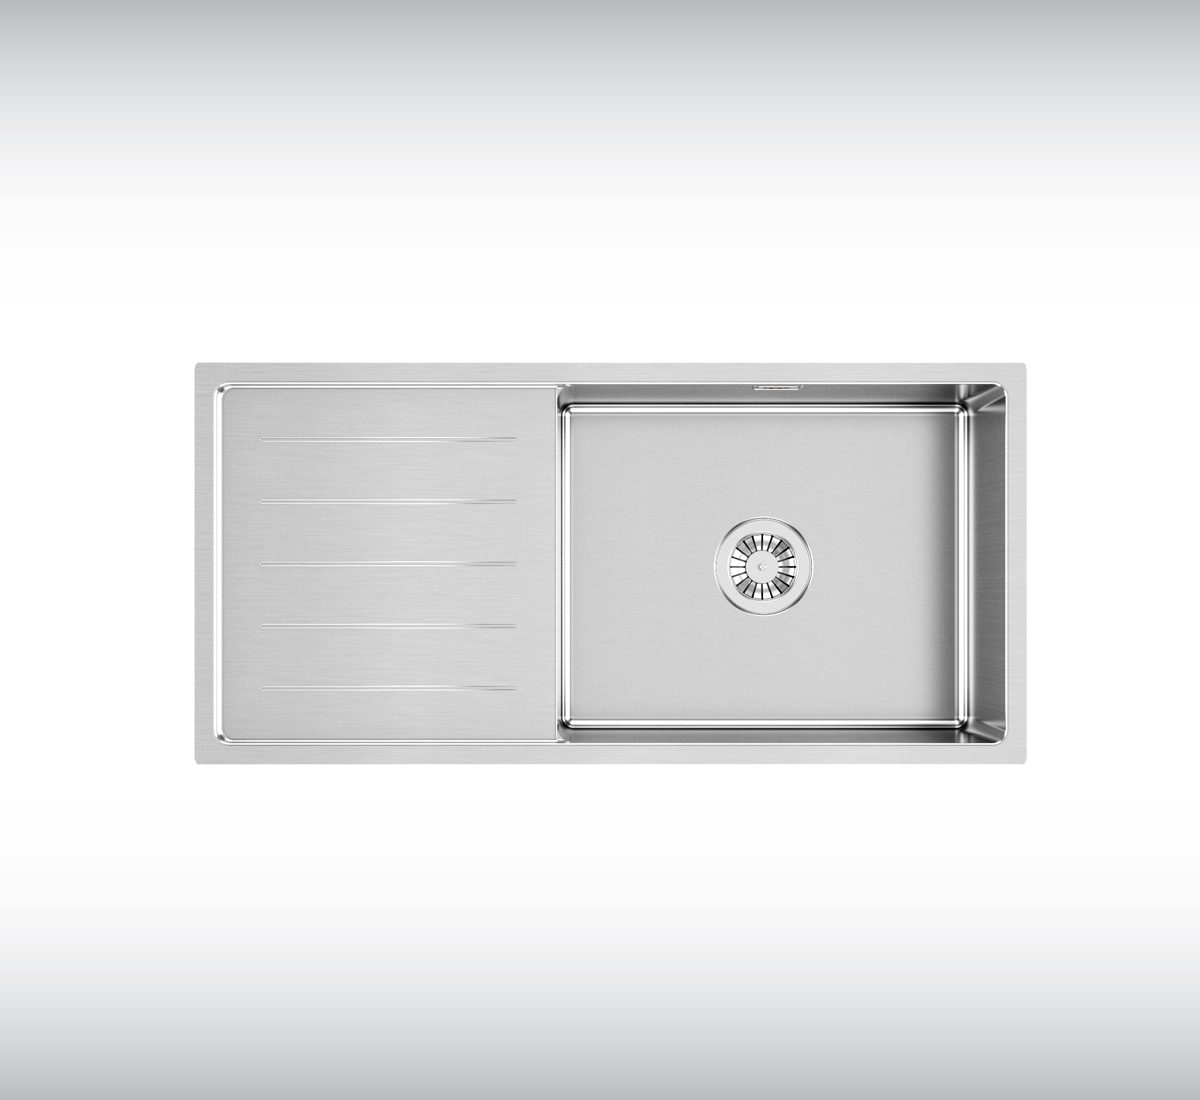 stainless steel sink UBSH-930DL